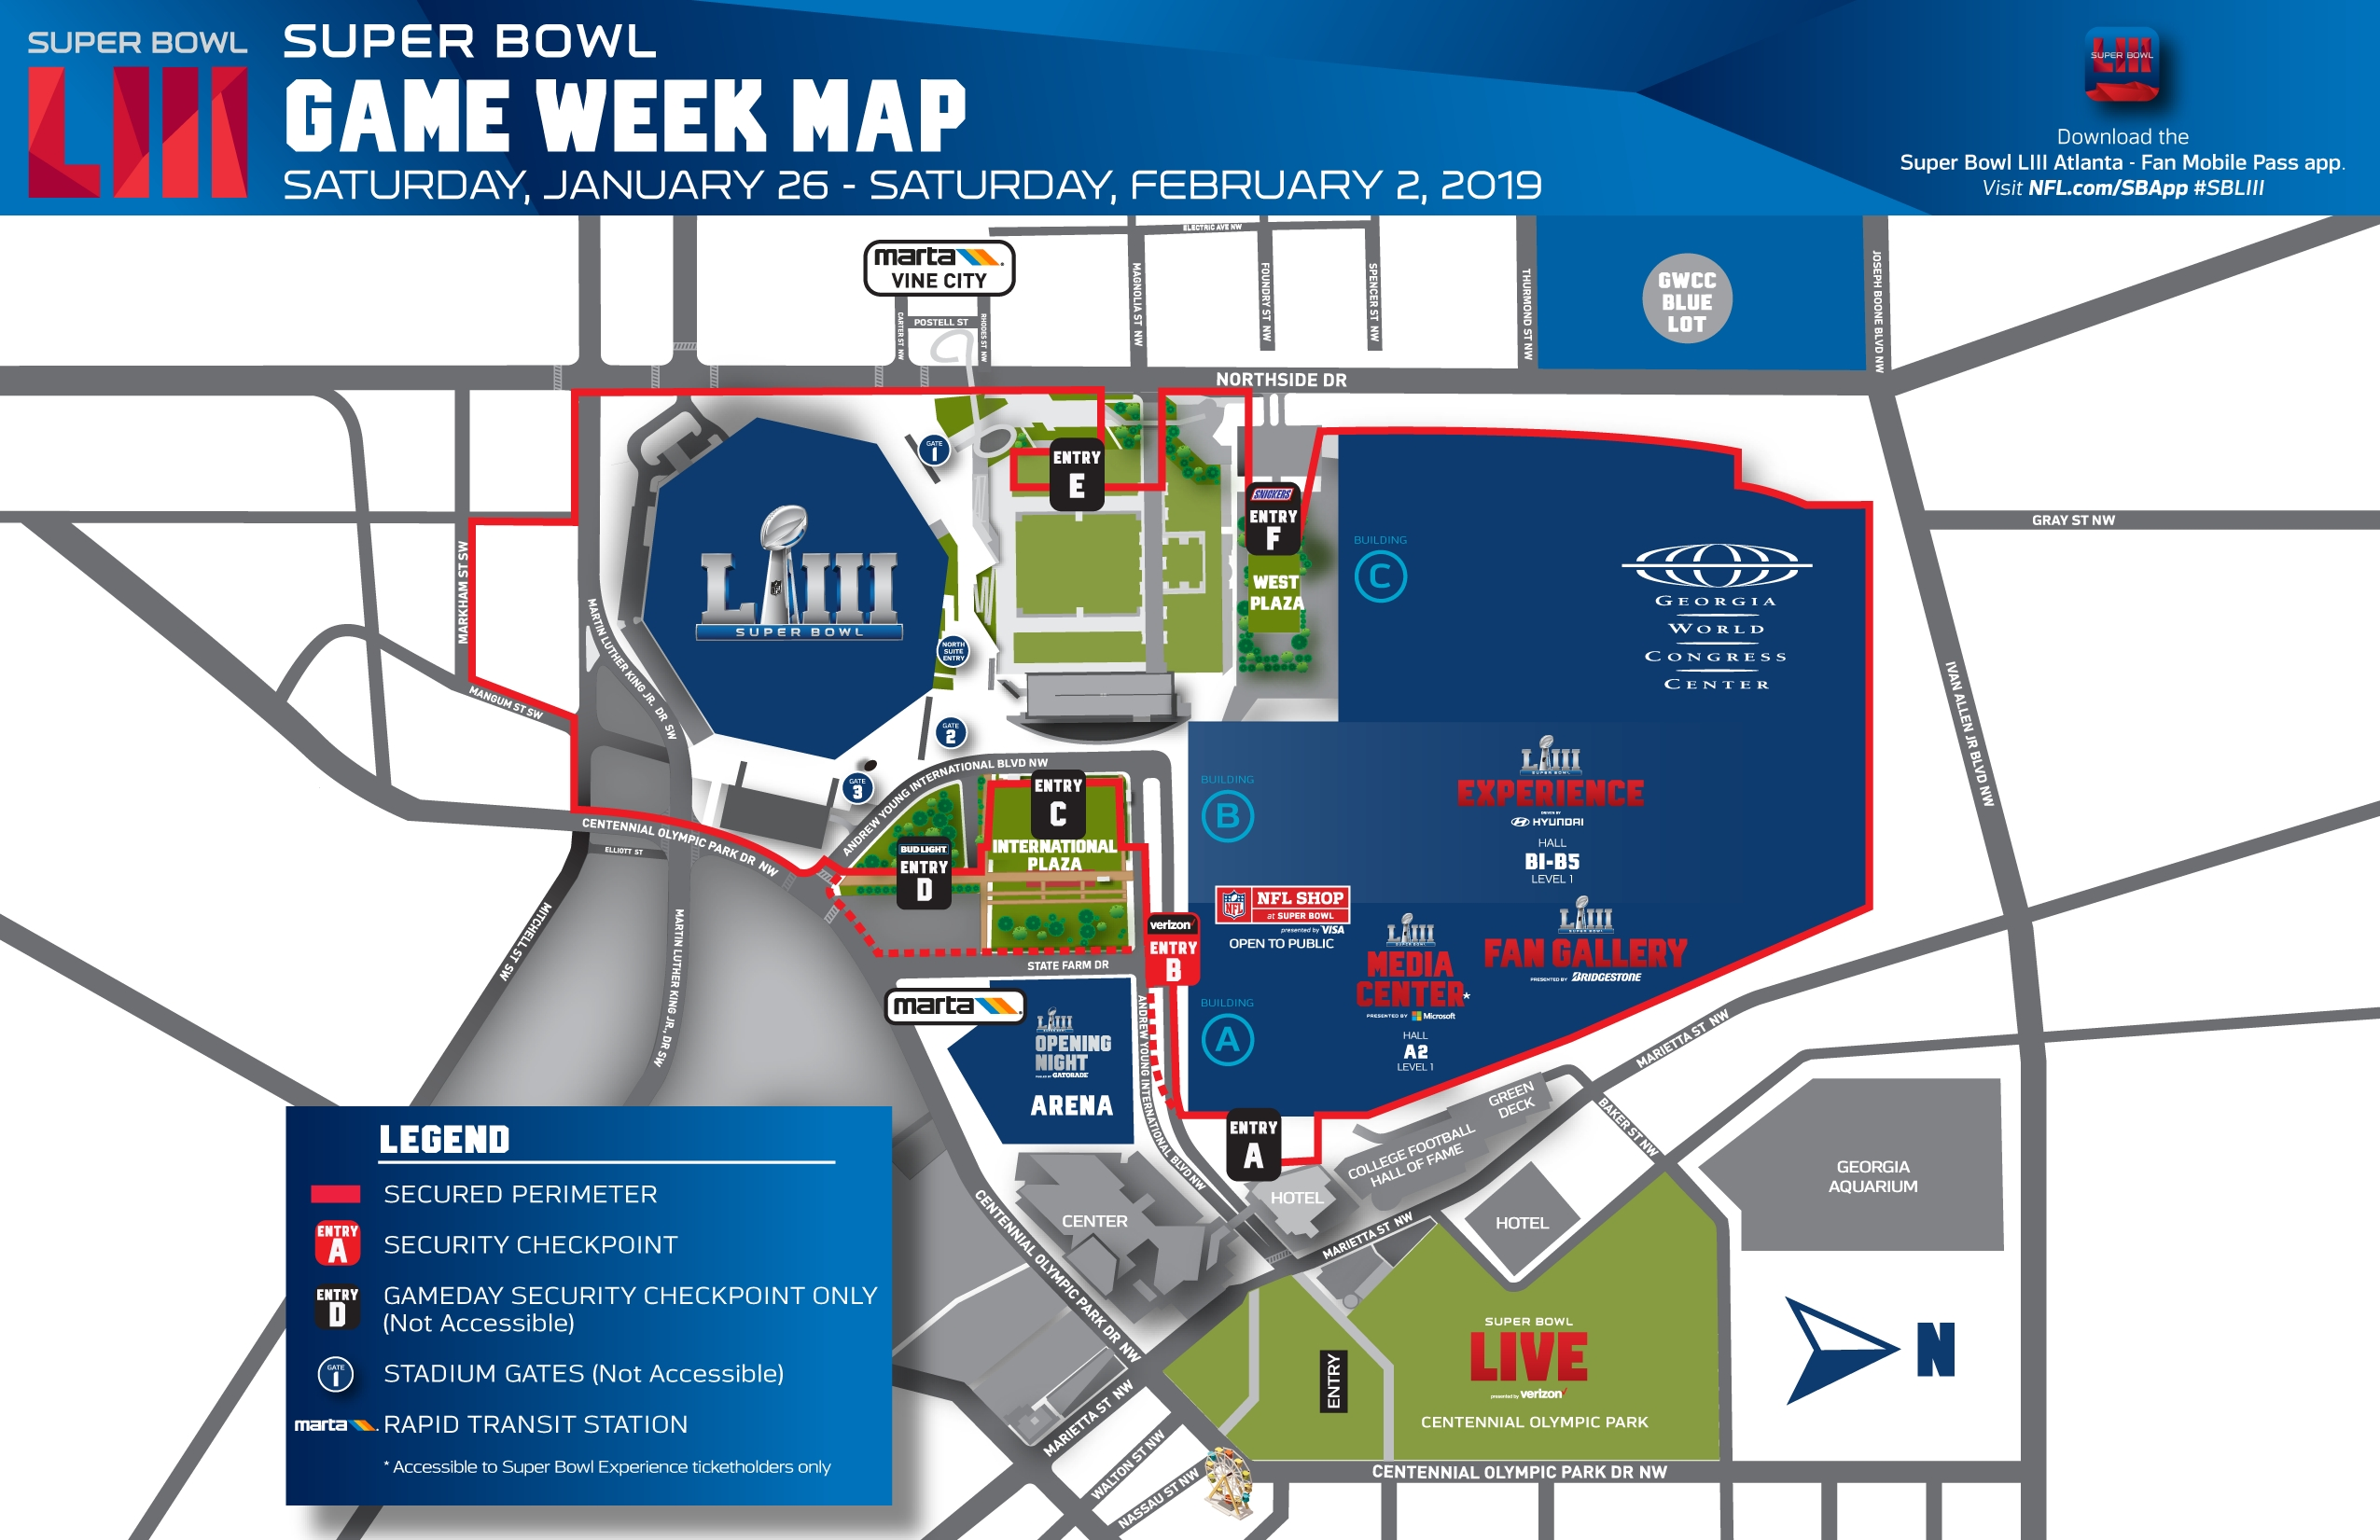 Super Bowl Experience   Nfl   Nfl with Super Bowl Parking Map